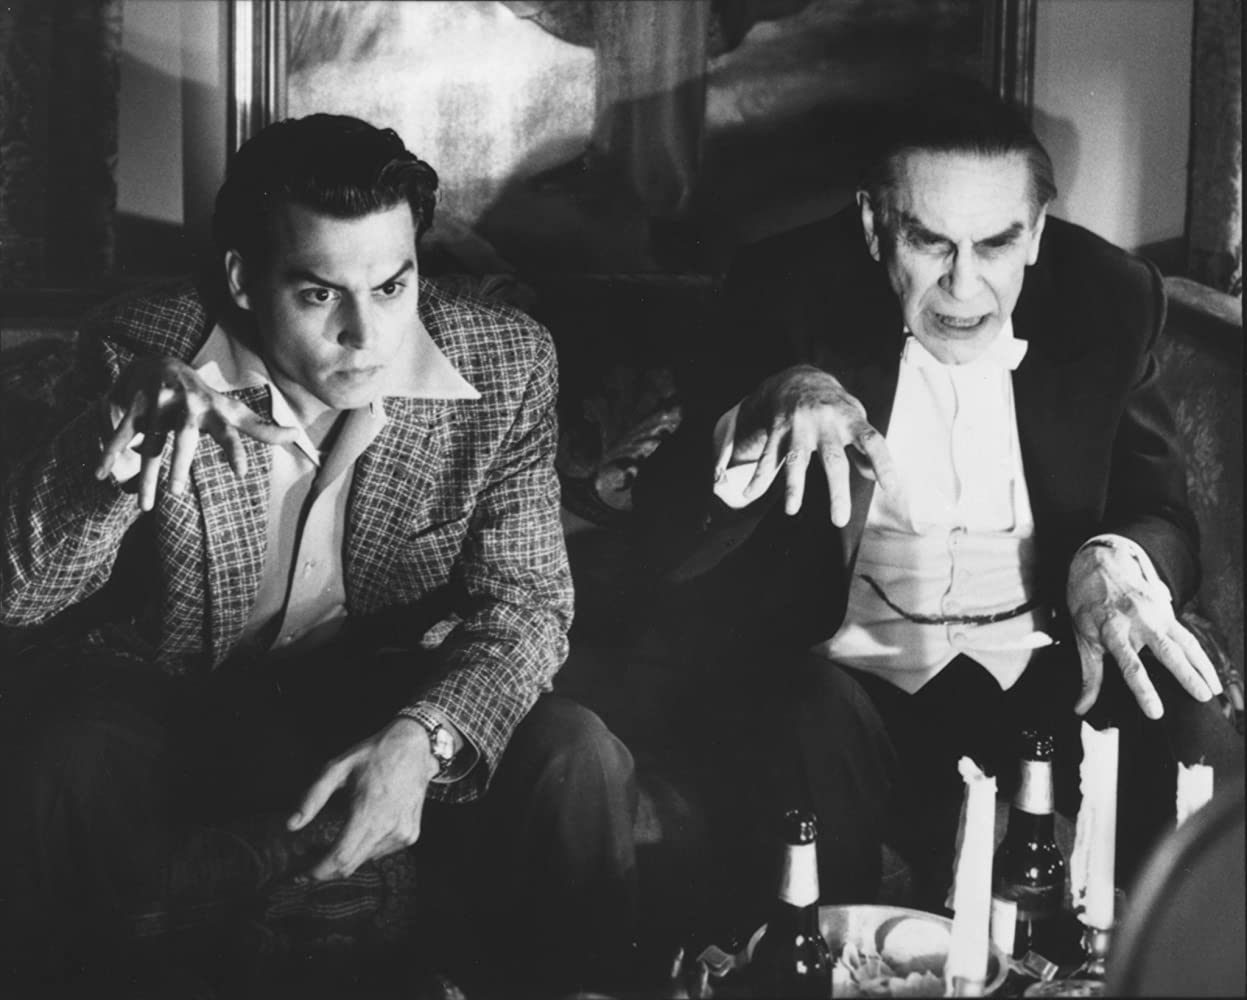 johnny-depp-as-ed-wood-and-martin-landau-as-bela-lugosi-in-1994